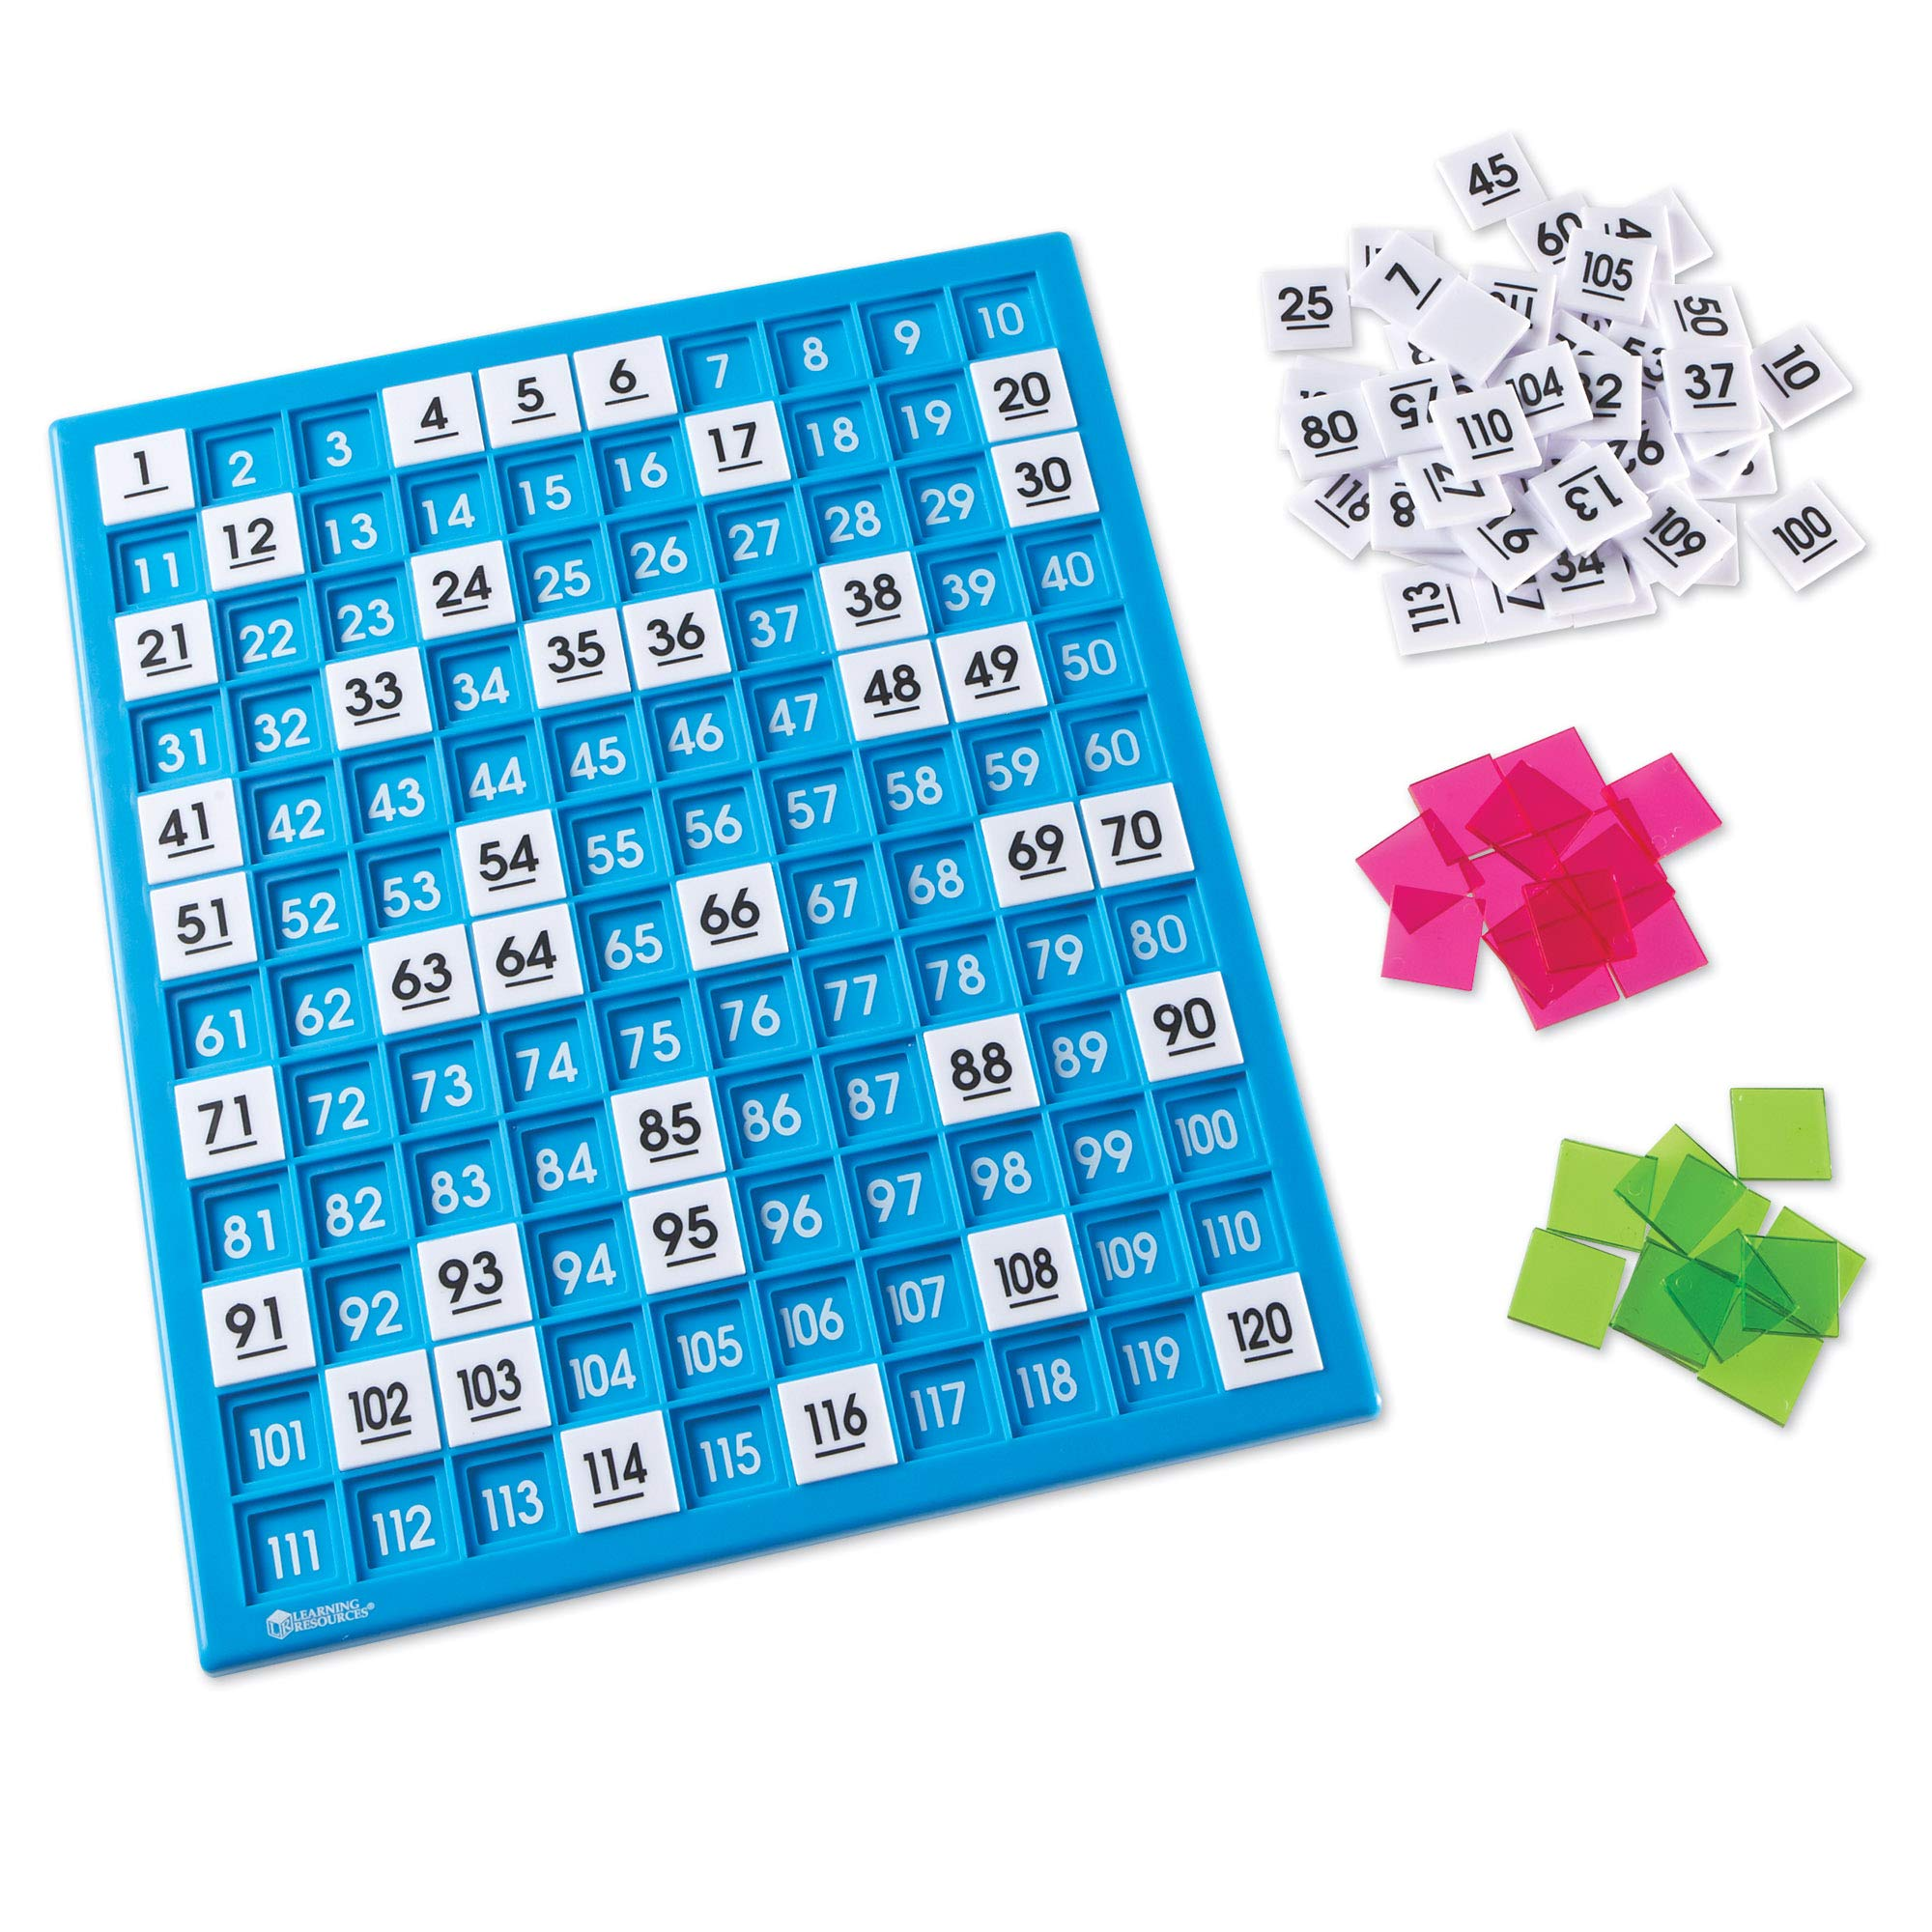 Learning Resources 120 Number Board, Tray & Numbered Tiles, Common Core Math, 181 Piece, Ages 6+ by Learning Resources